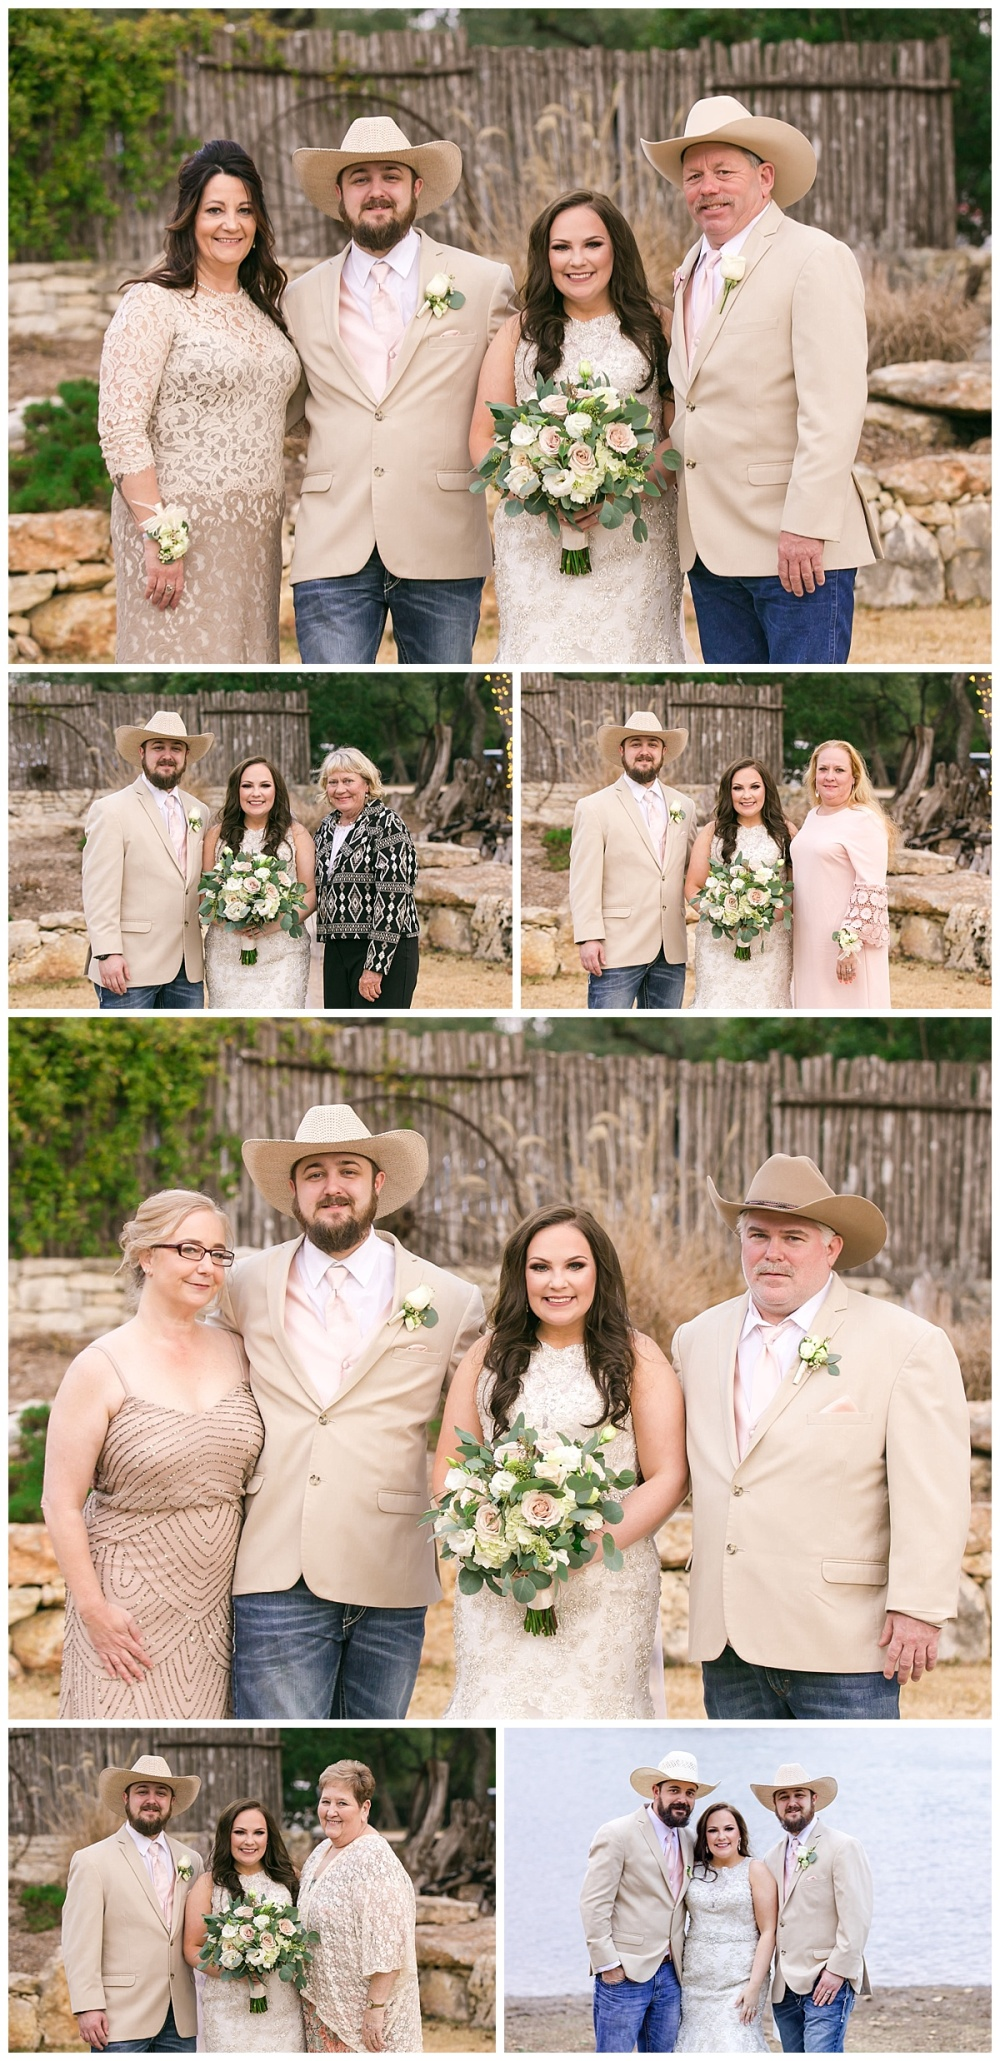 Carly-Barton-Photography-Branded-T-Ranch-Kendalia-Texas-Hill-Country-Wedding_0046.jpg